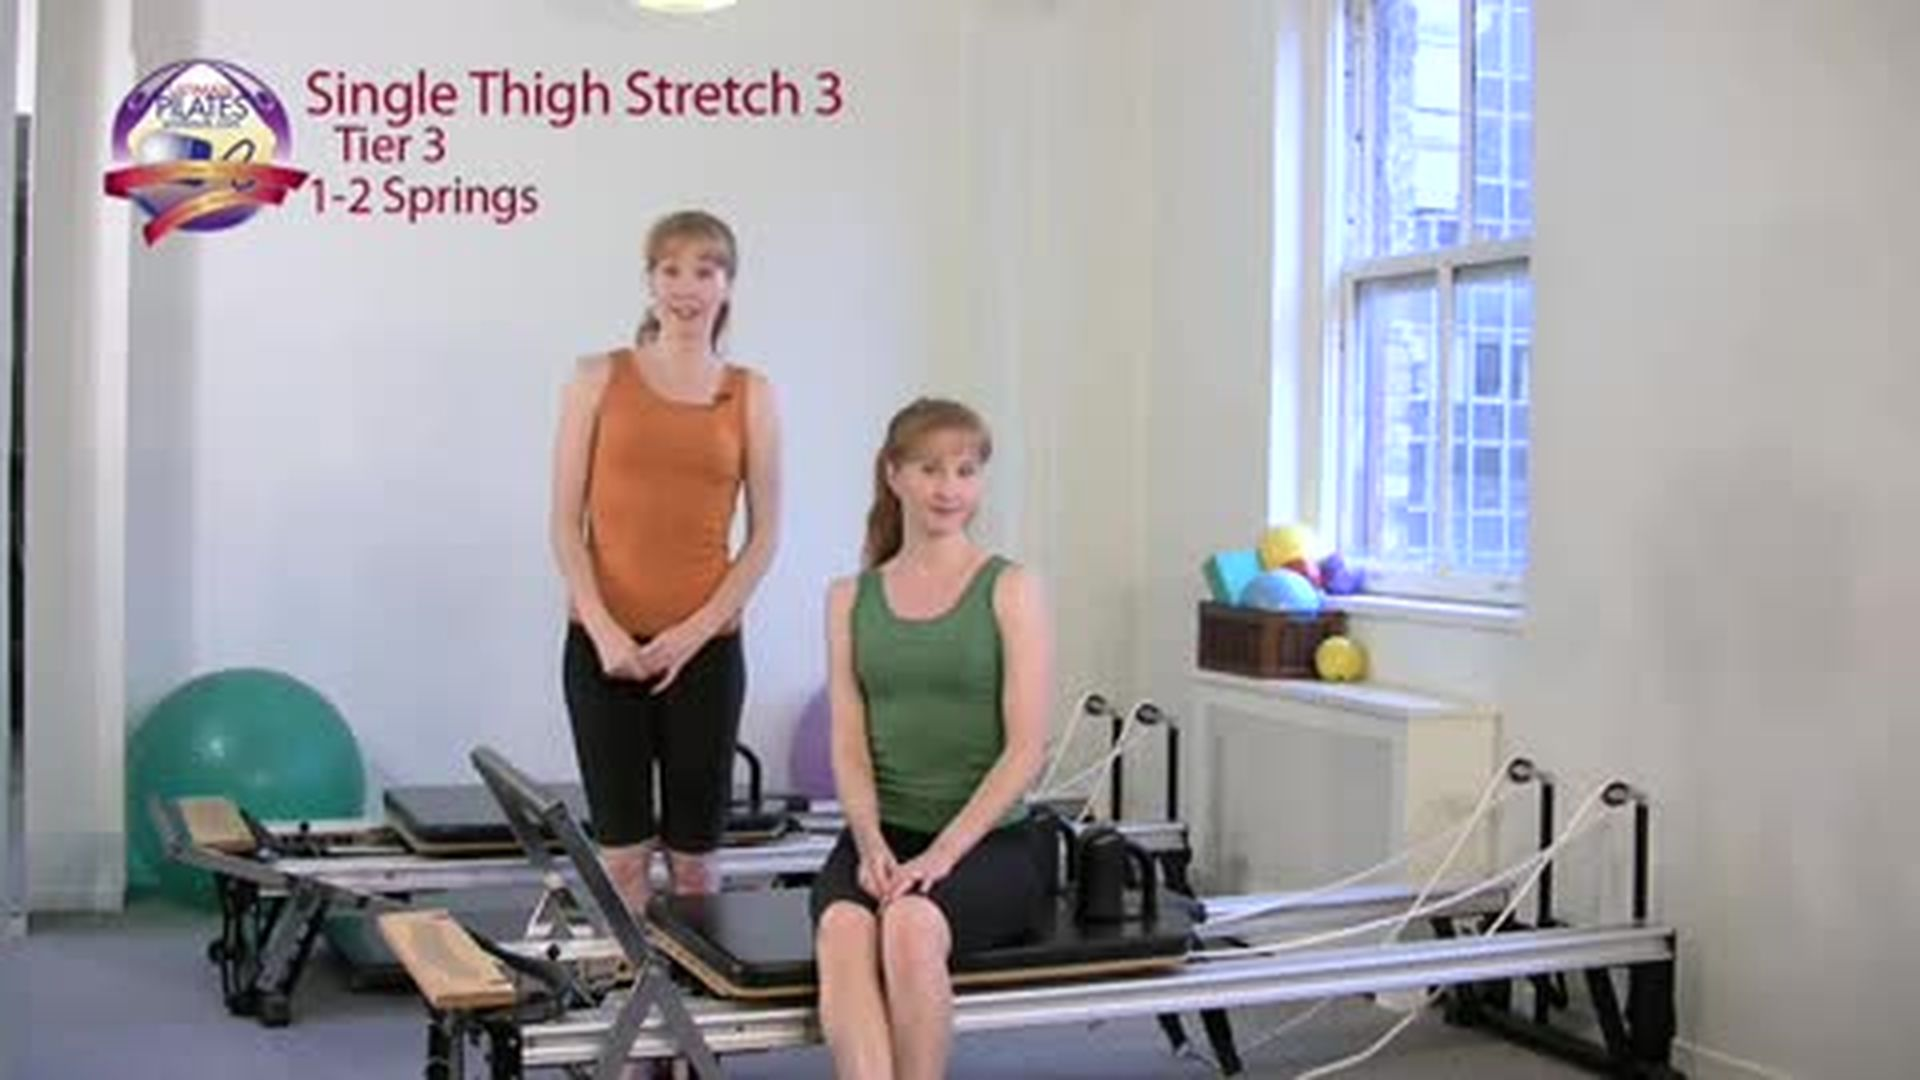 Single Thigh Stretch 3